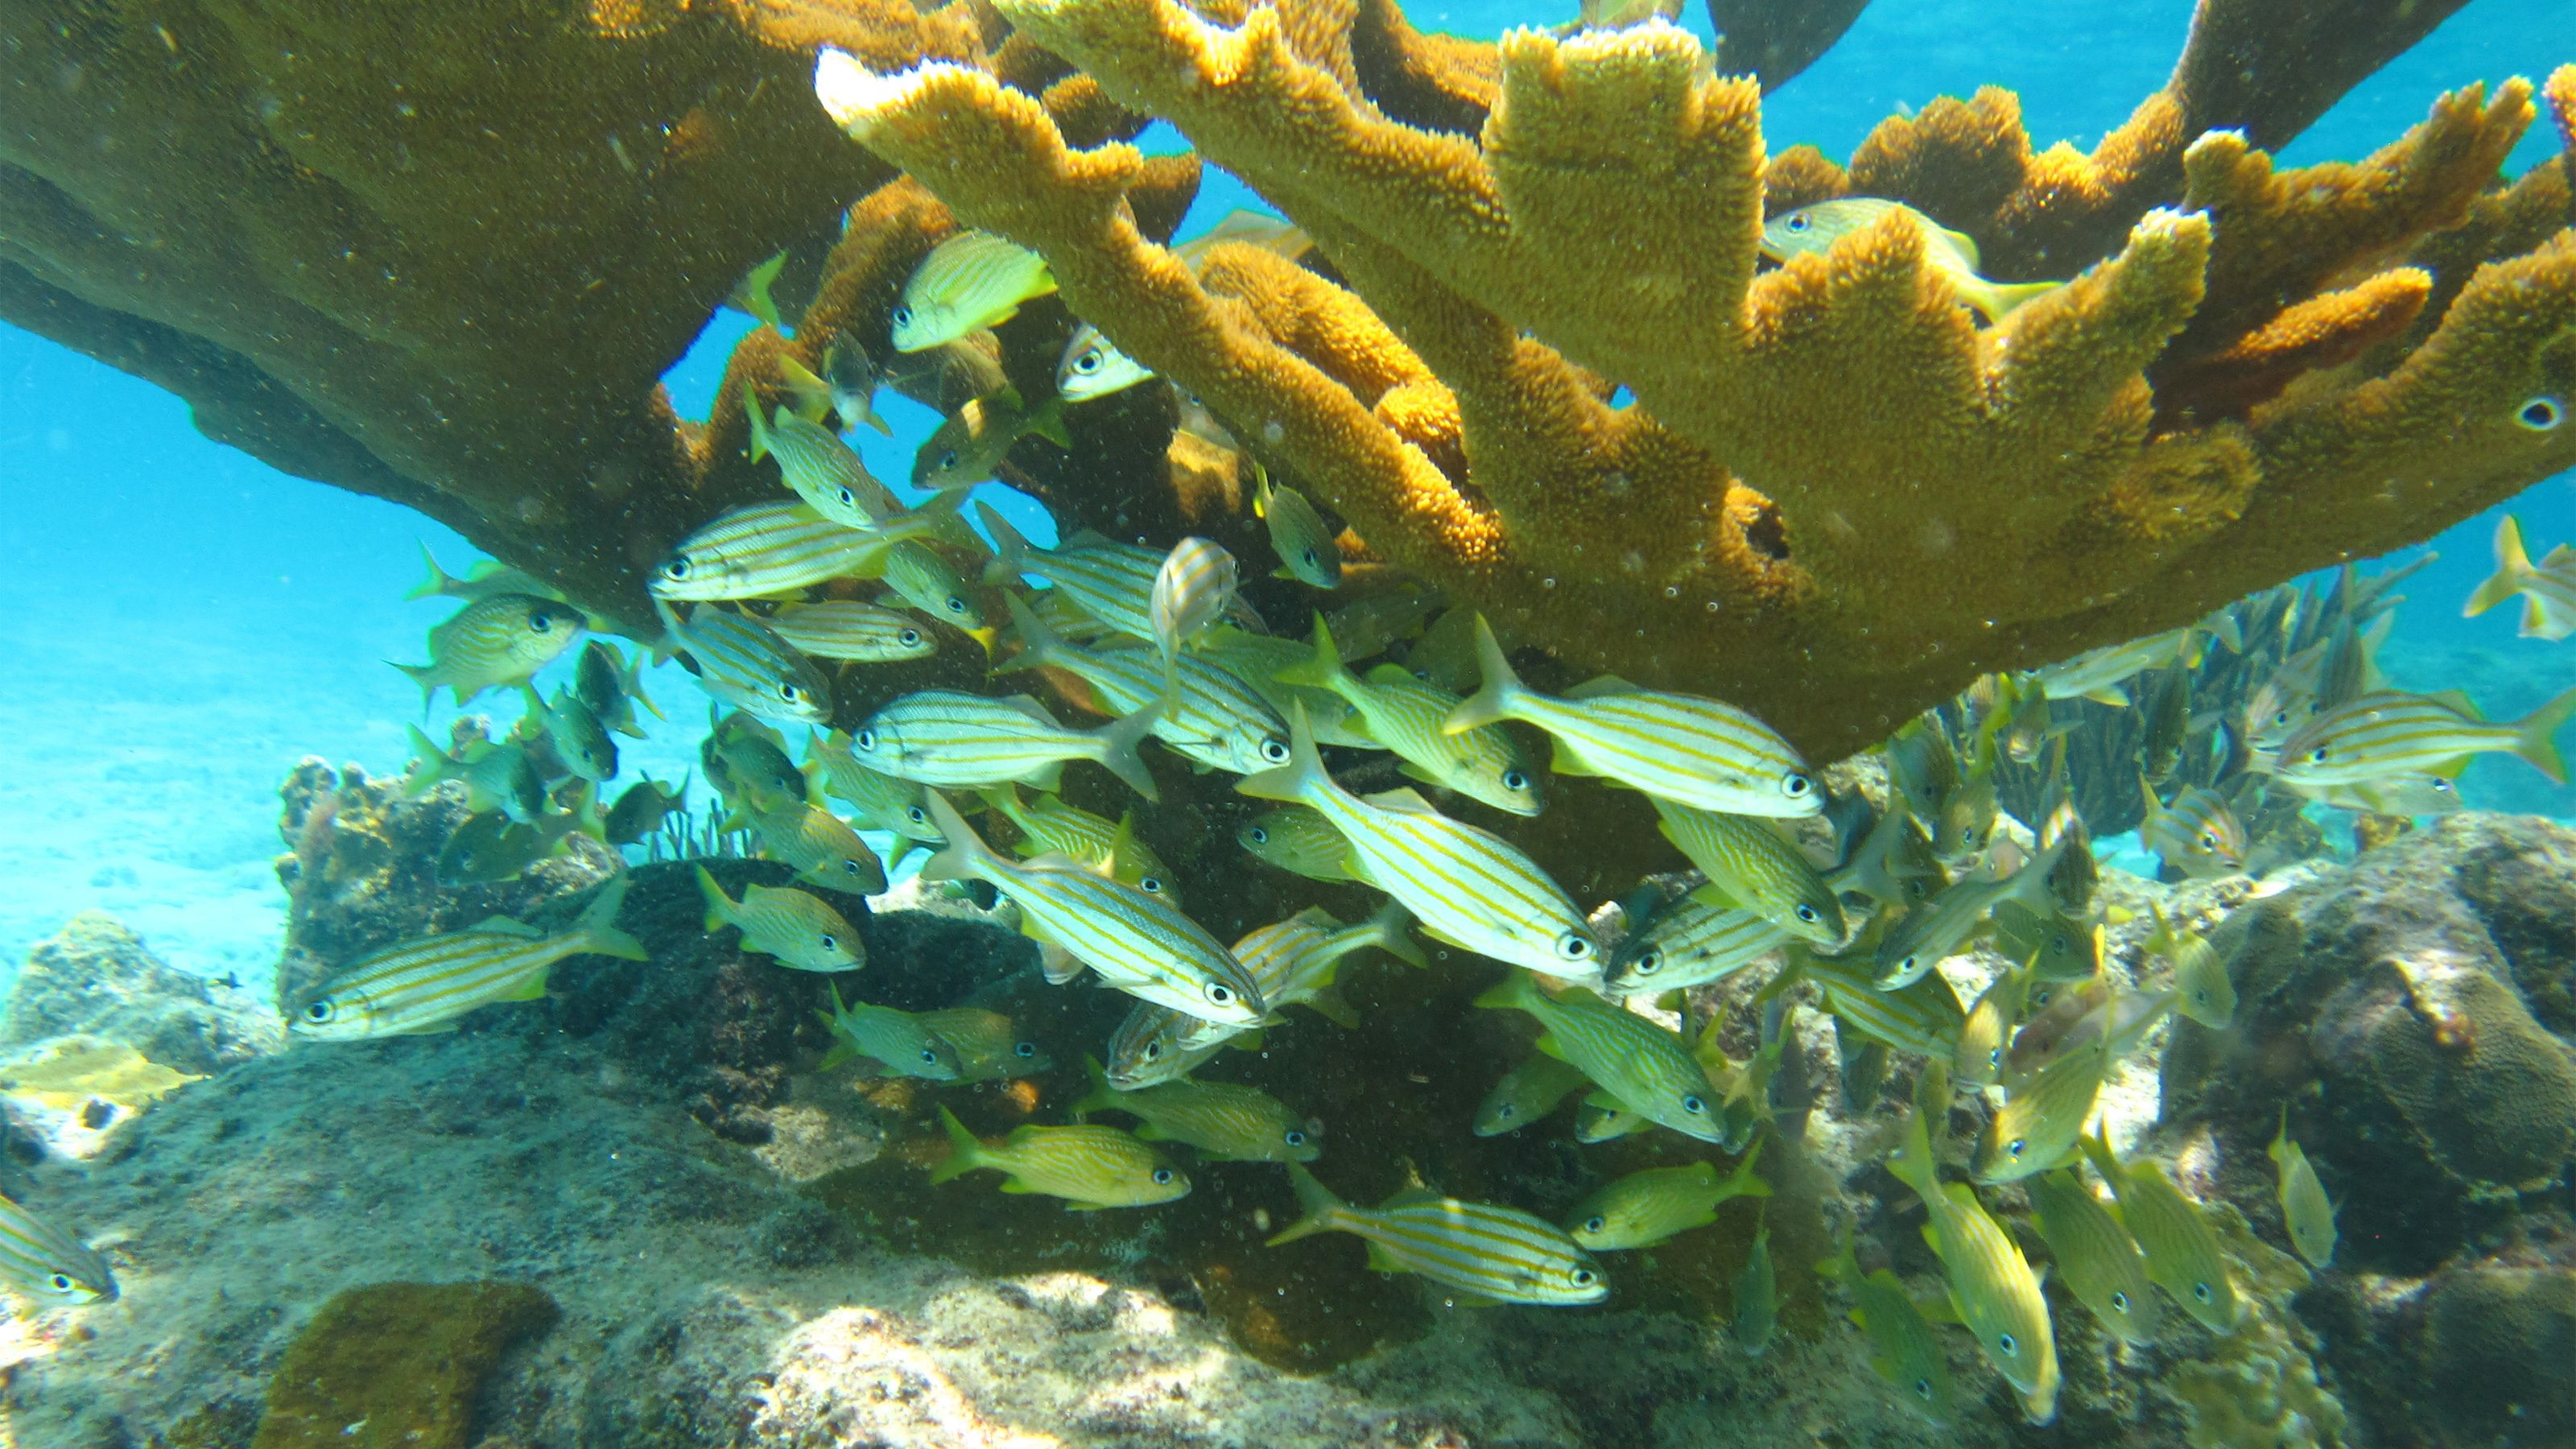 Underwater view of reefs and fish in Curacao